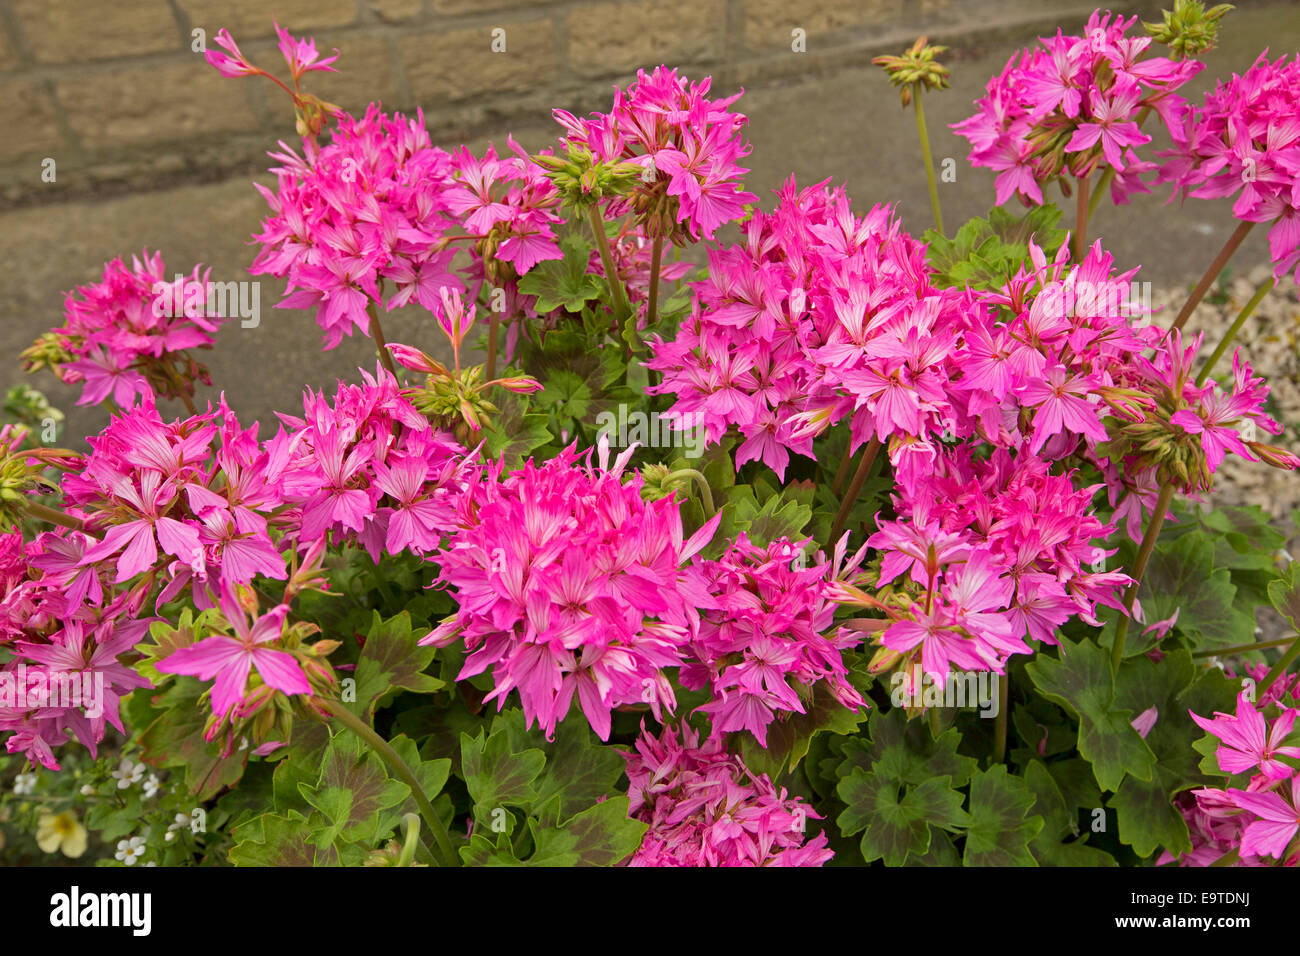 Cluster of stunning brilliant pink geranium flowers graffiti series cluster of stunning brilliant pink geranium flowers graffiti series with green and red variegated leaves mightylinksfo